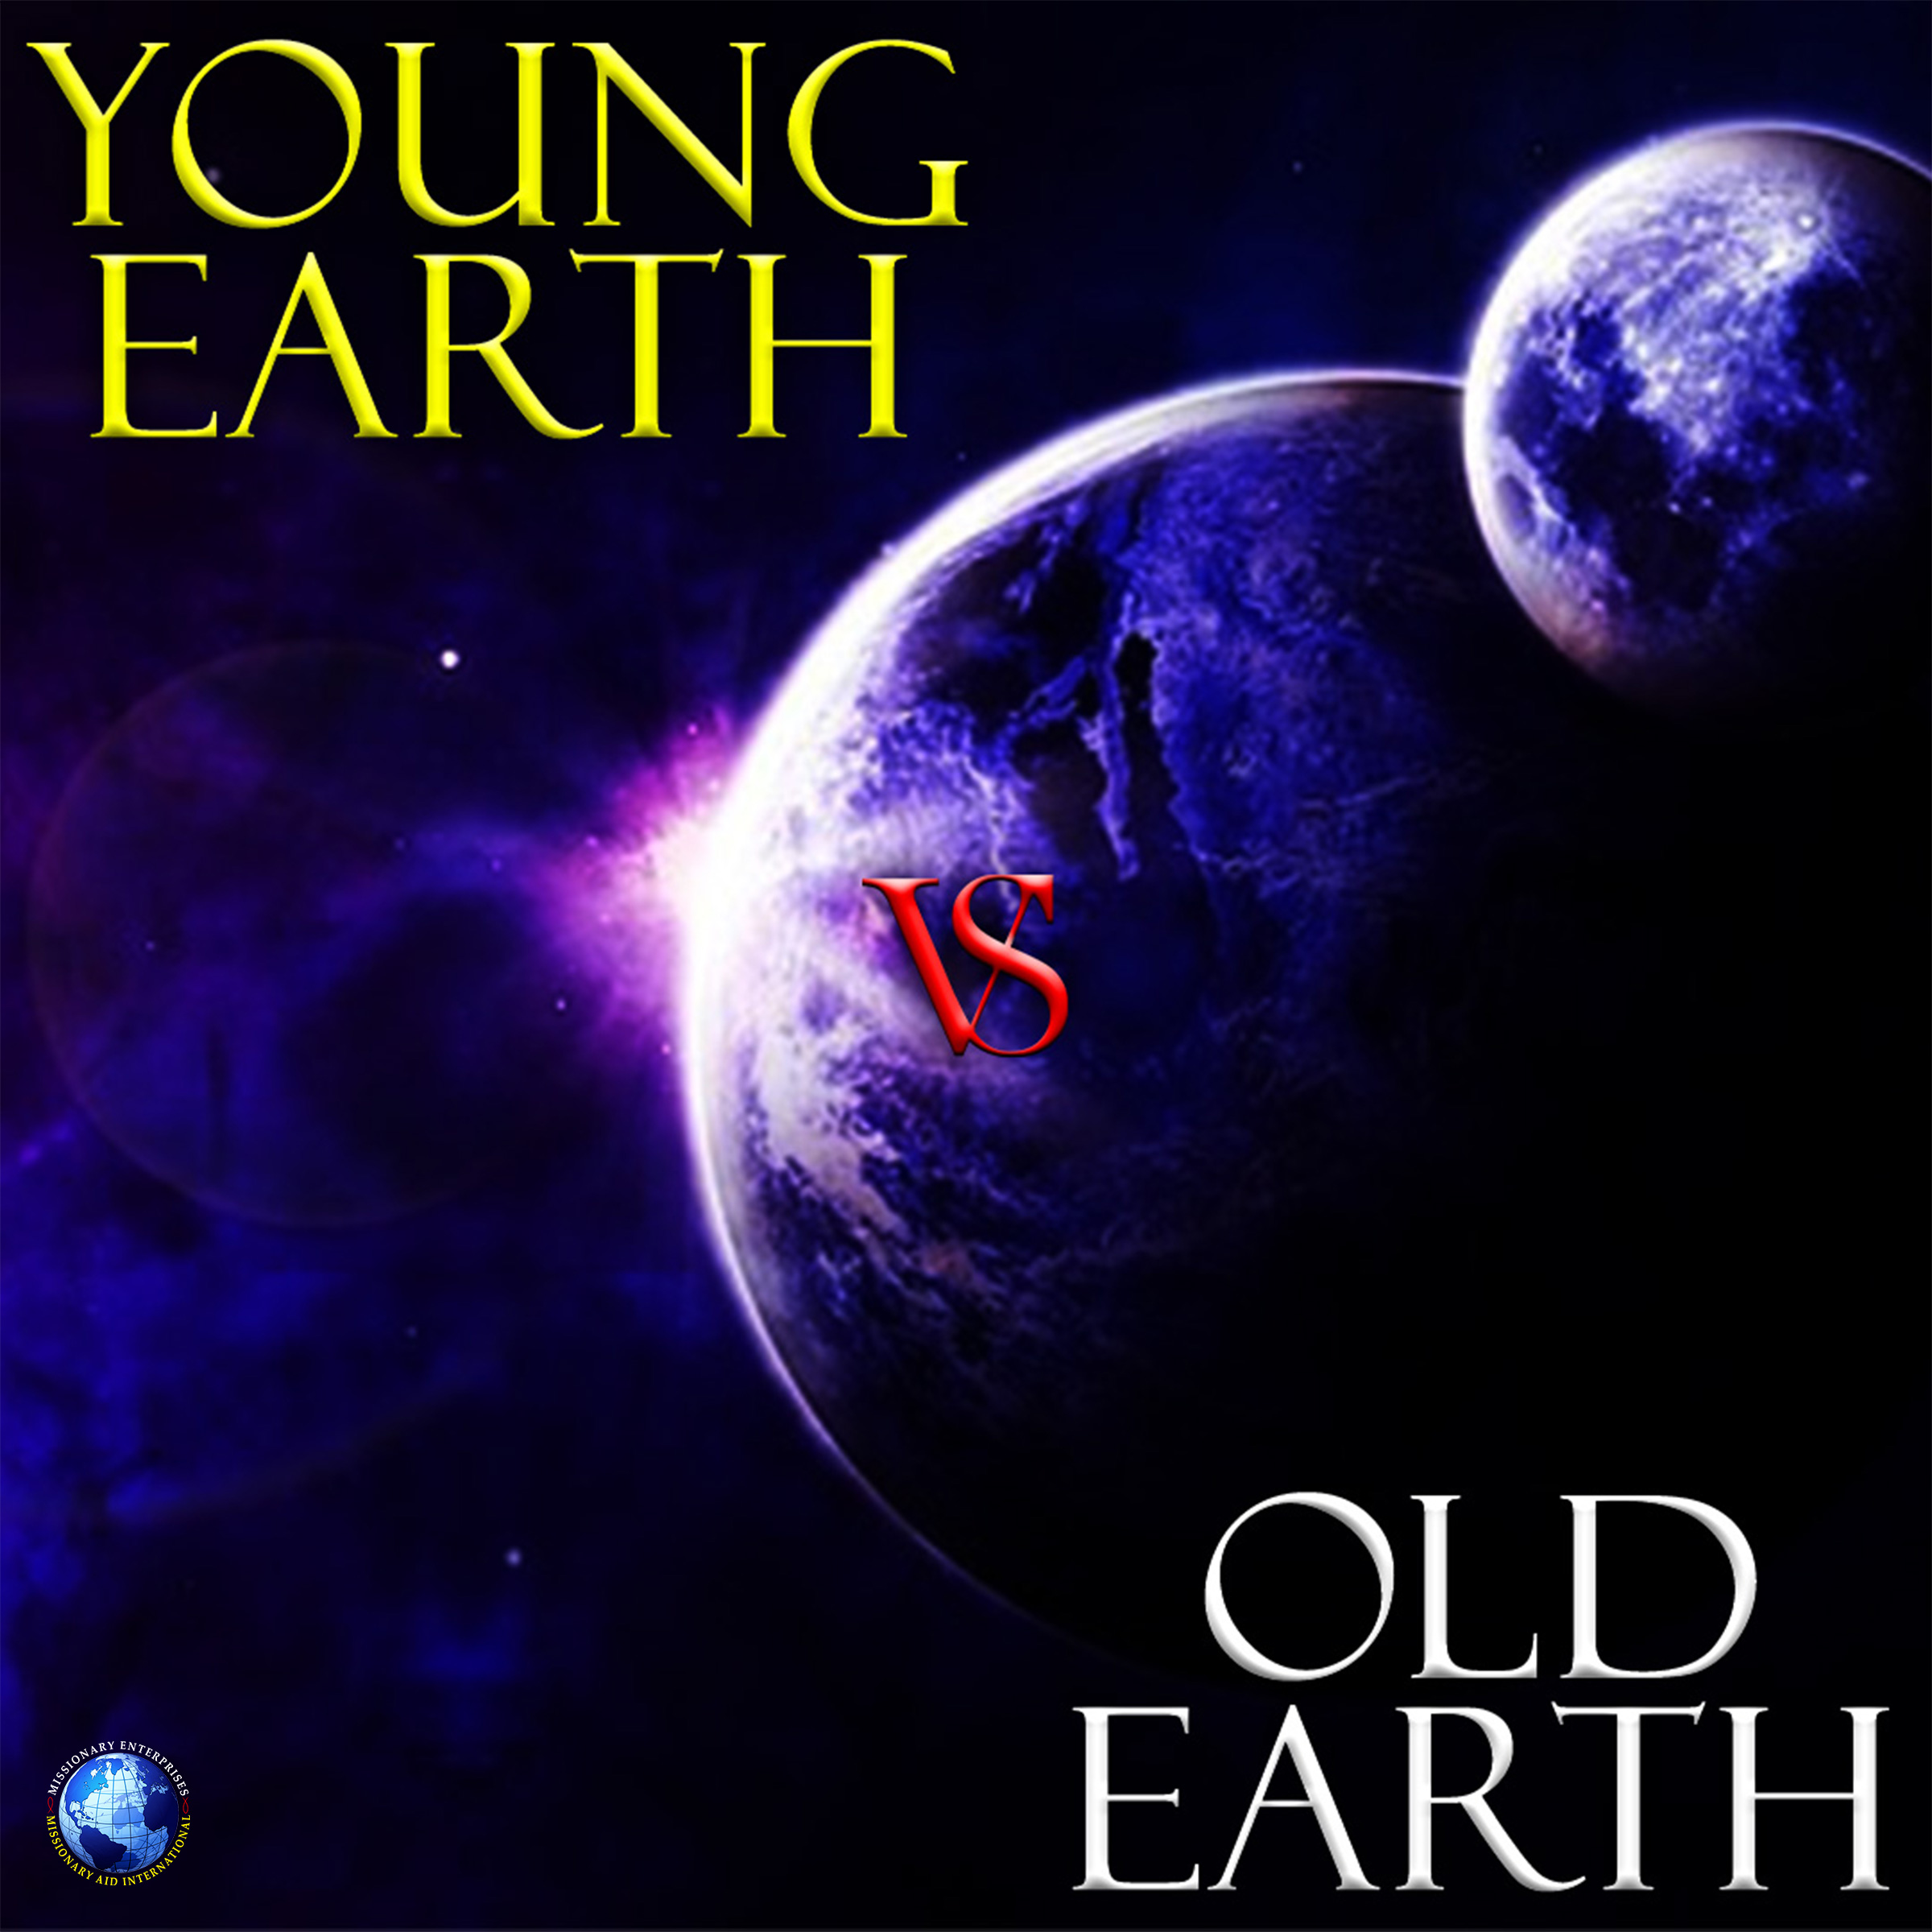 Young Earth vs Old Earth